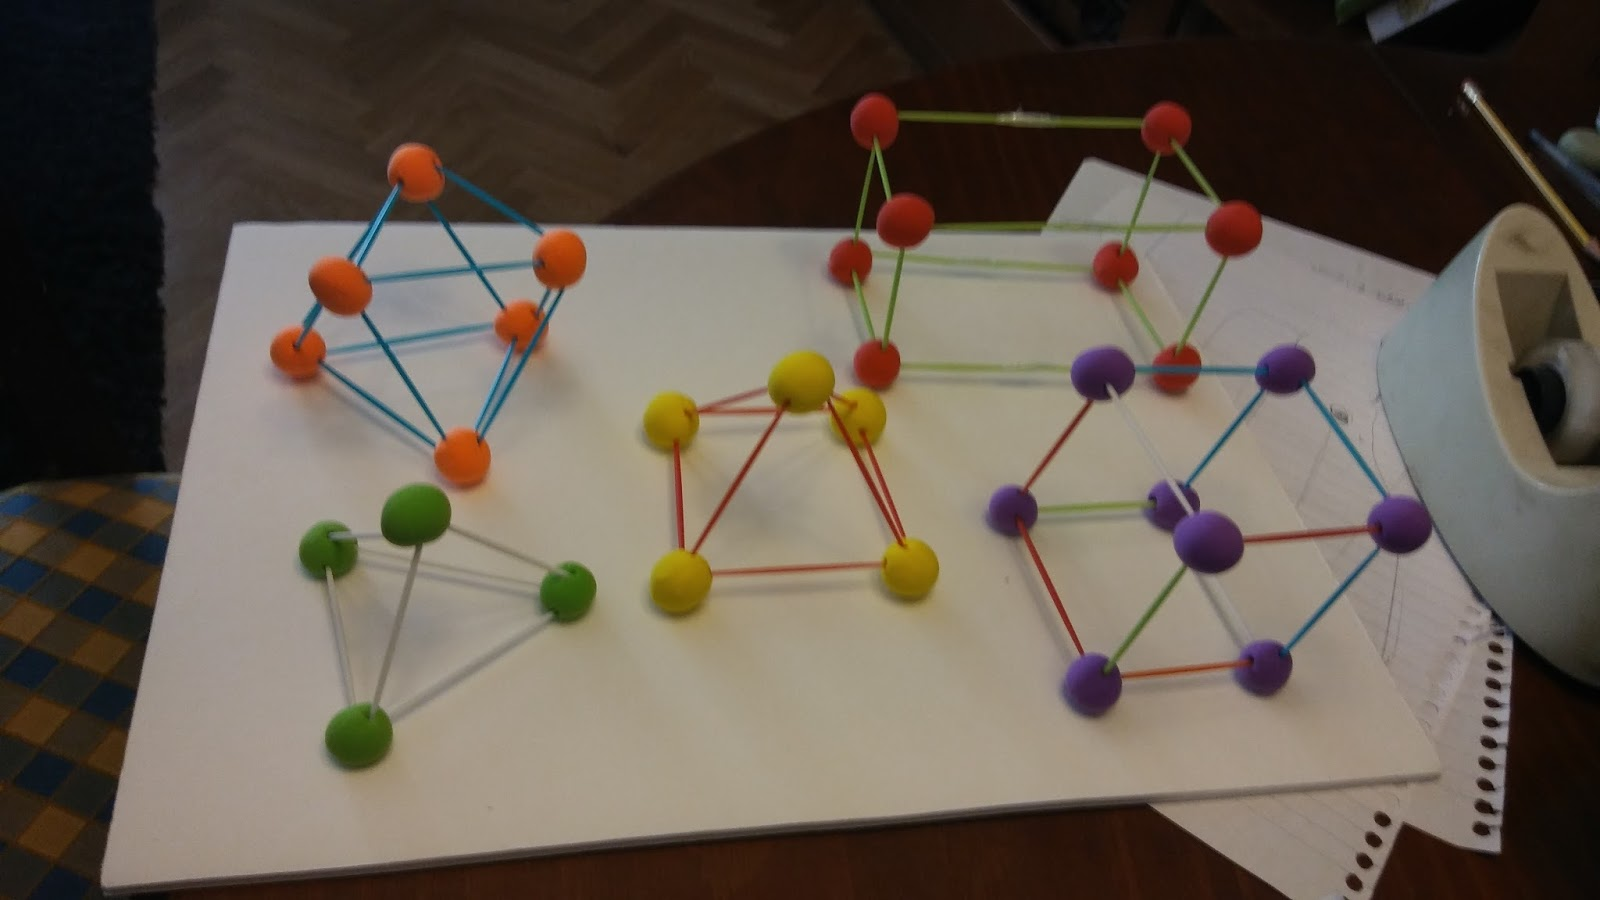 Erasmus Magnemathicts Geometric Figures With Toothpicks